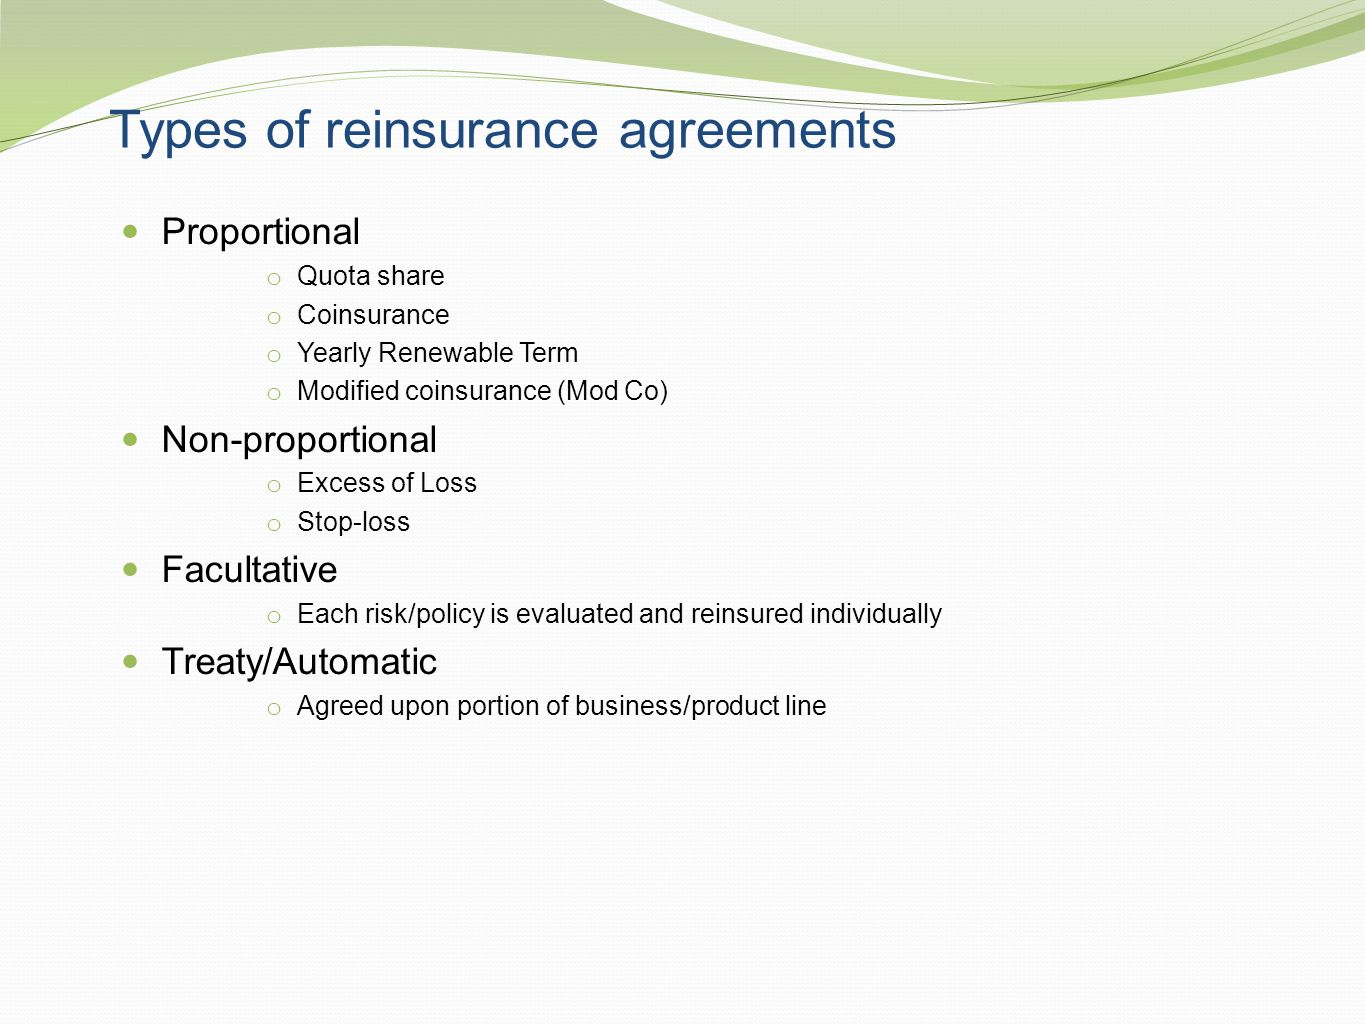 Types of reinsurance agreements